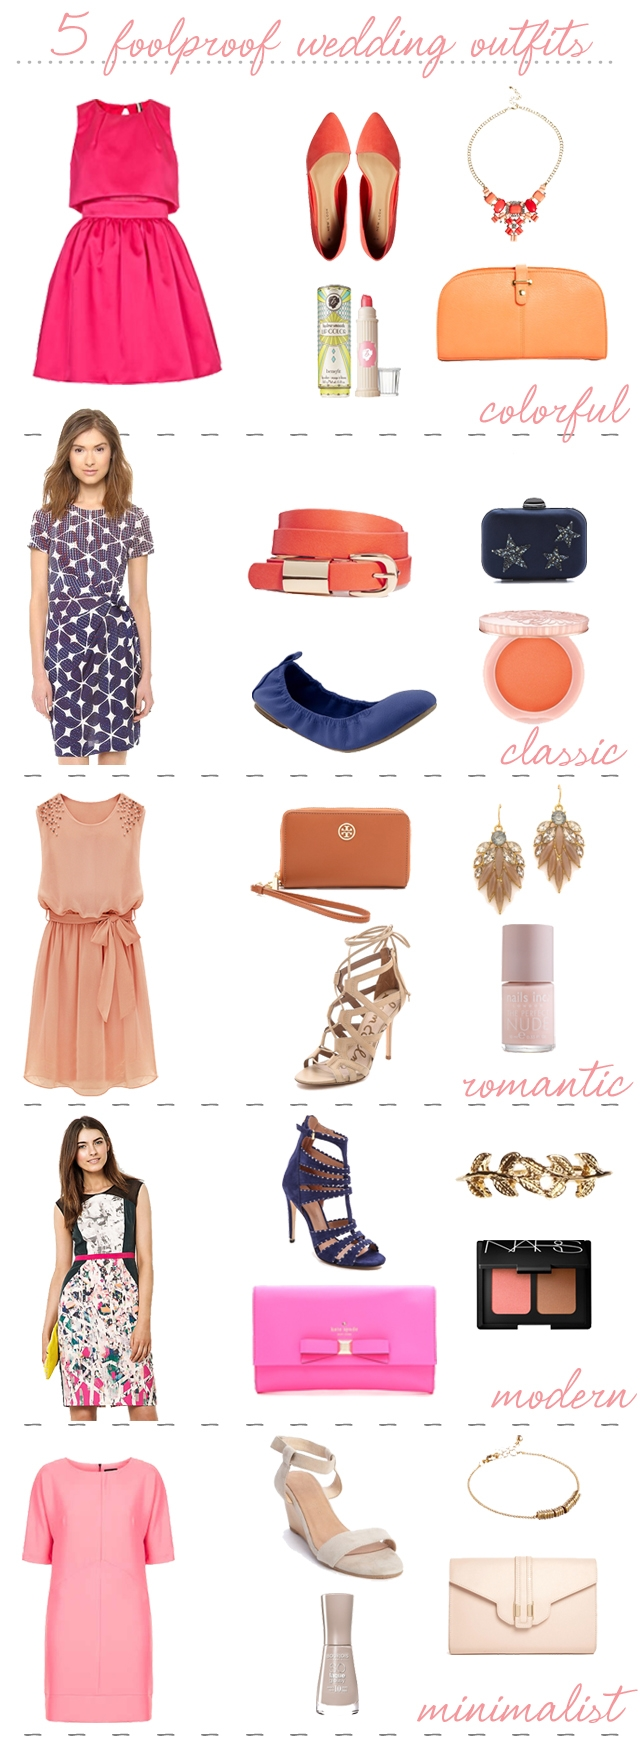 foolproof-wedding-outfits